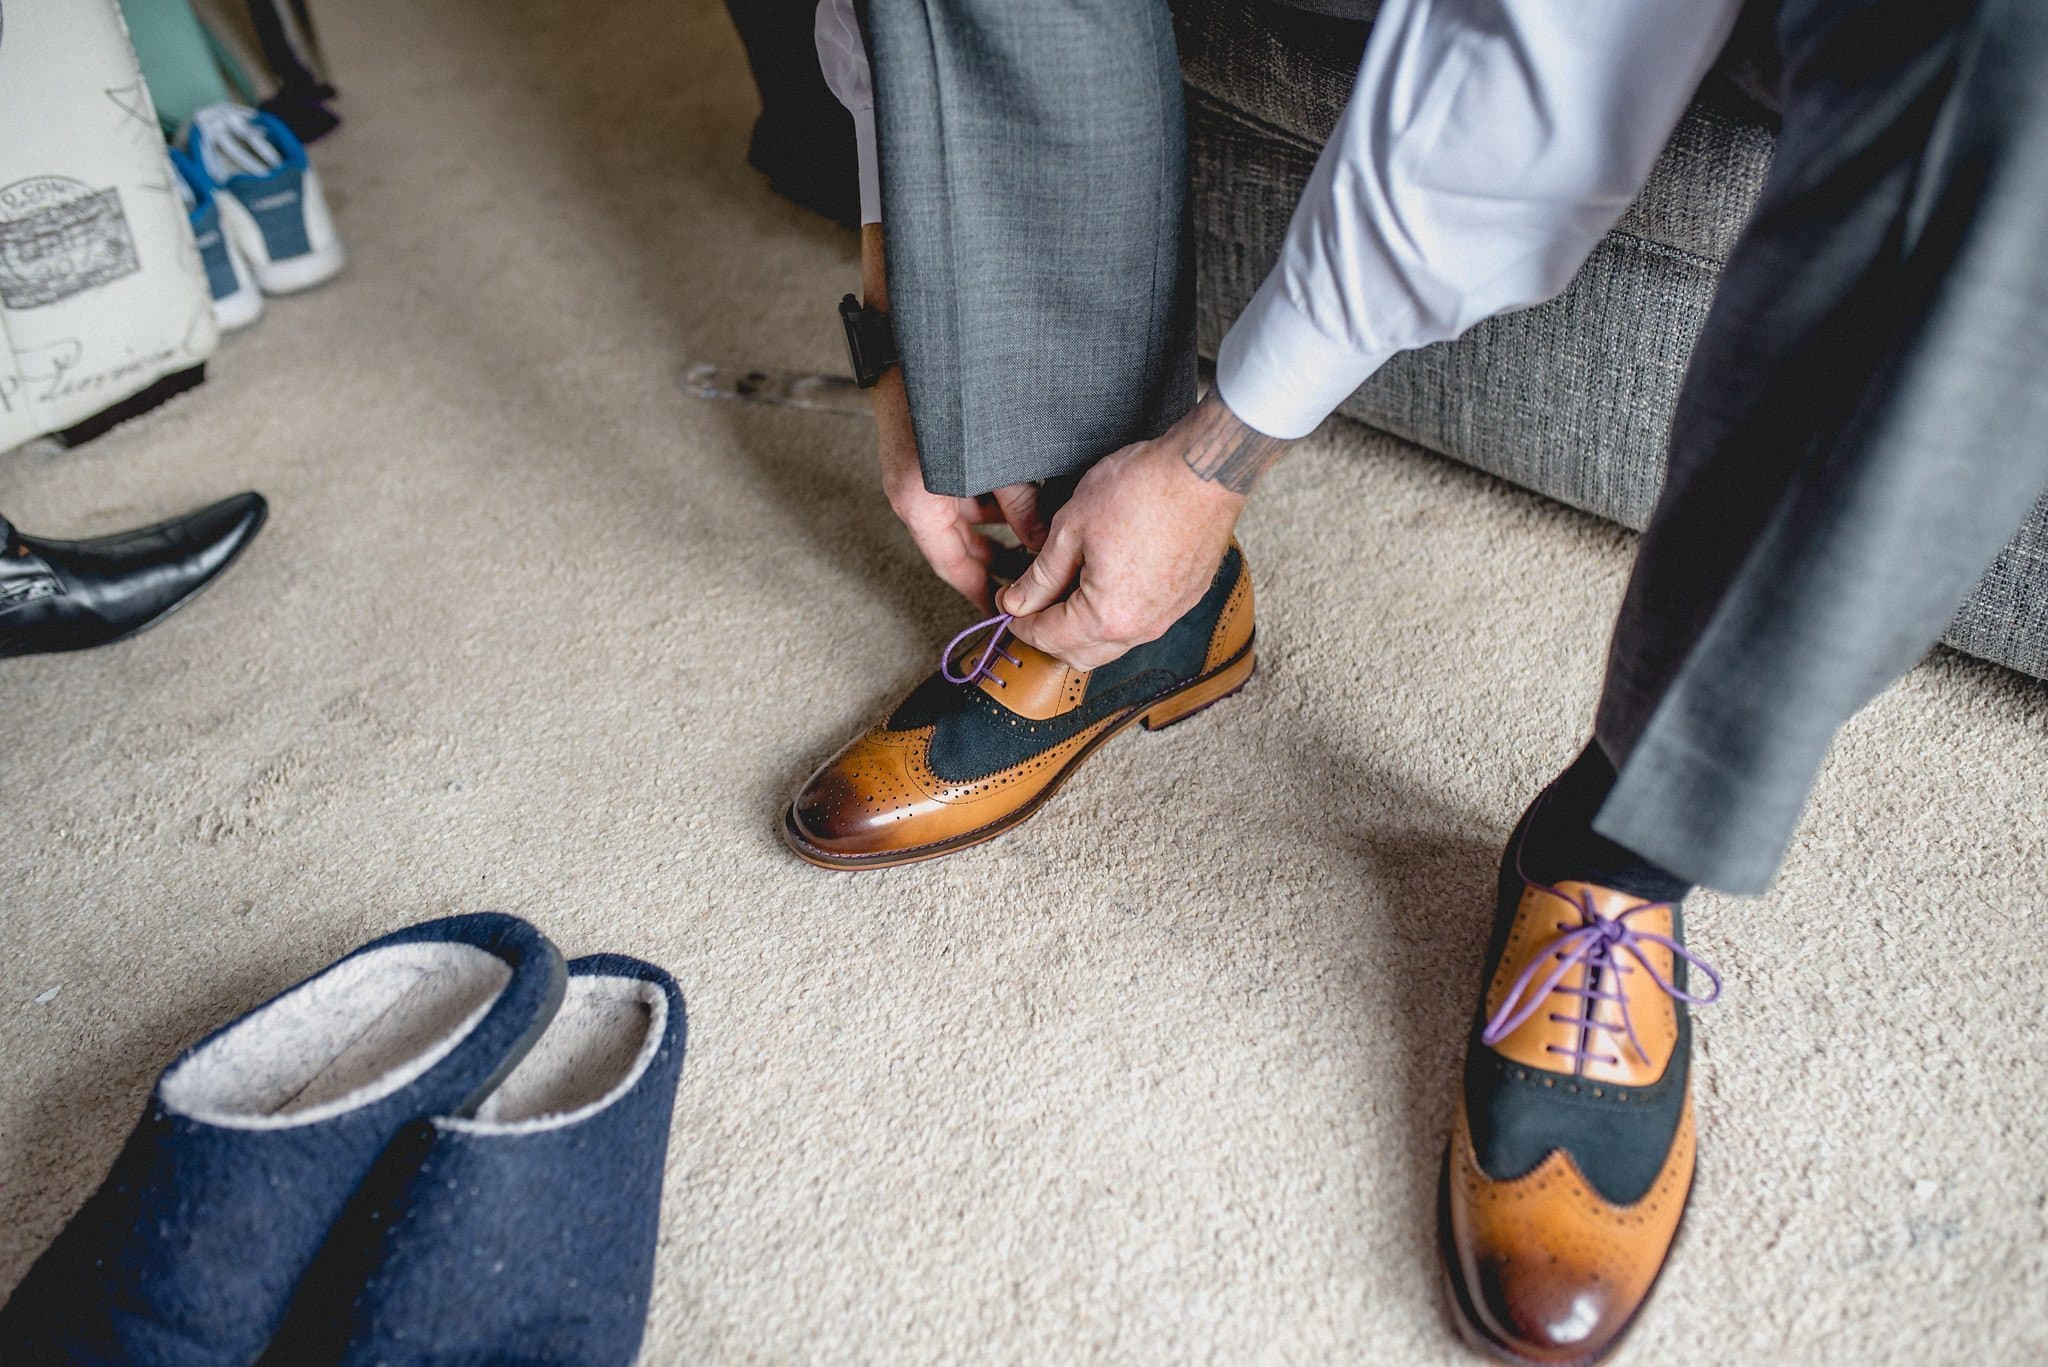 Steven ties his black and tan leather brogues with purple laces